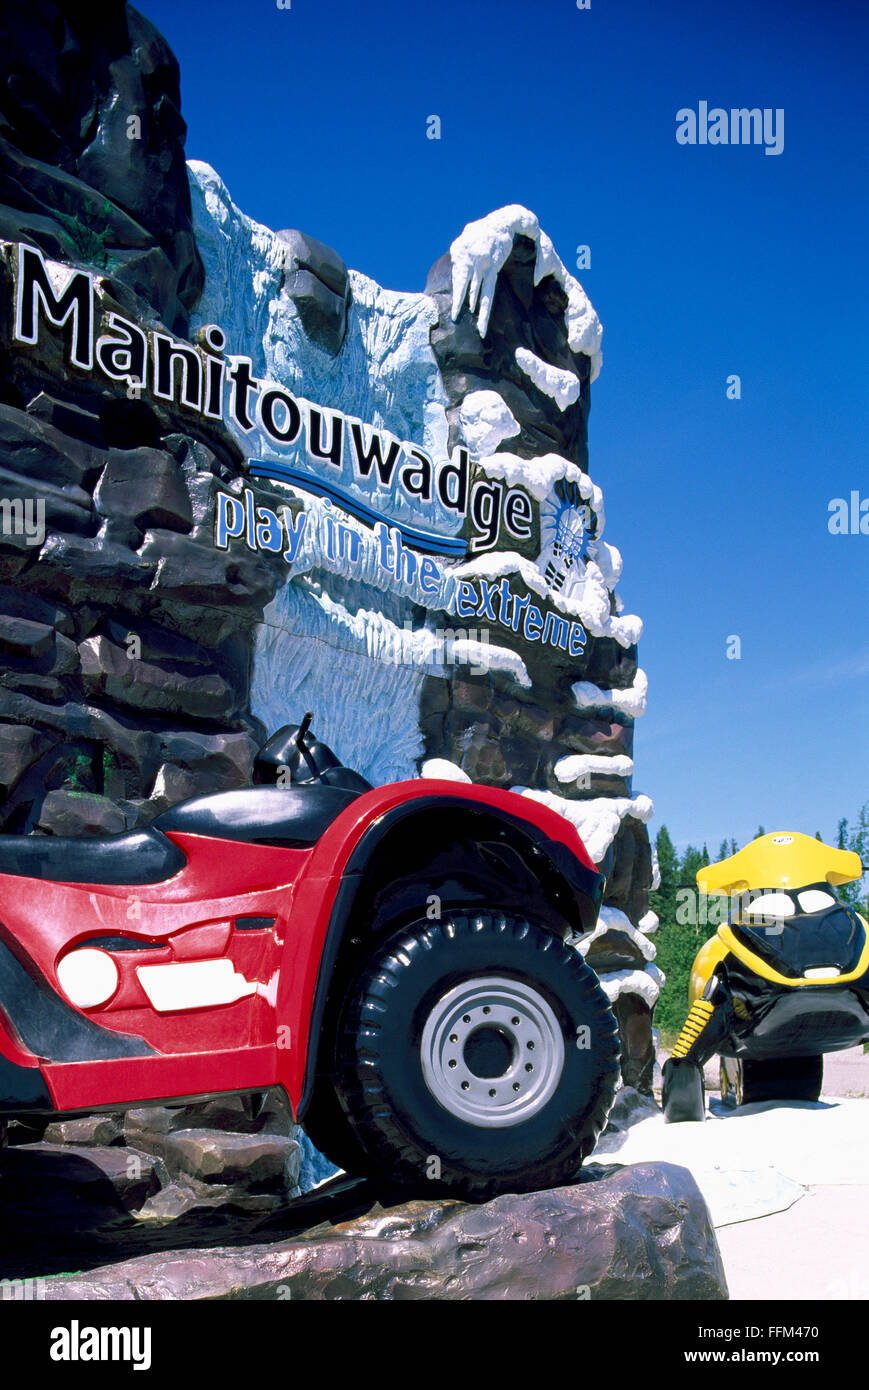 Welcome Sign to Town of Manitouwadge, Ontario, Canada - ATV and Skidoo showcase Local Summer and Winter Recreational - Stock Image